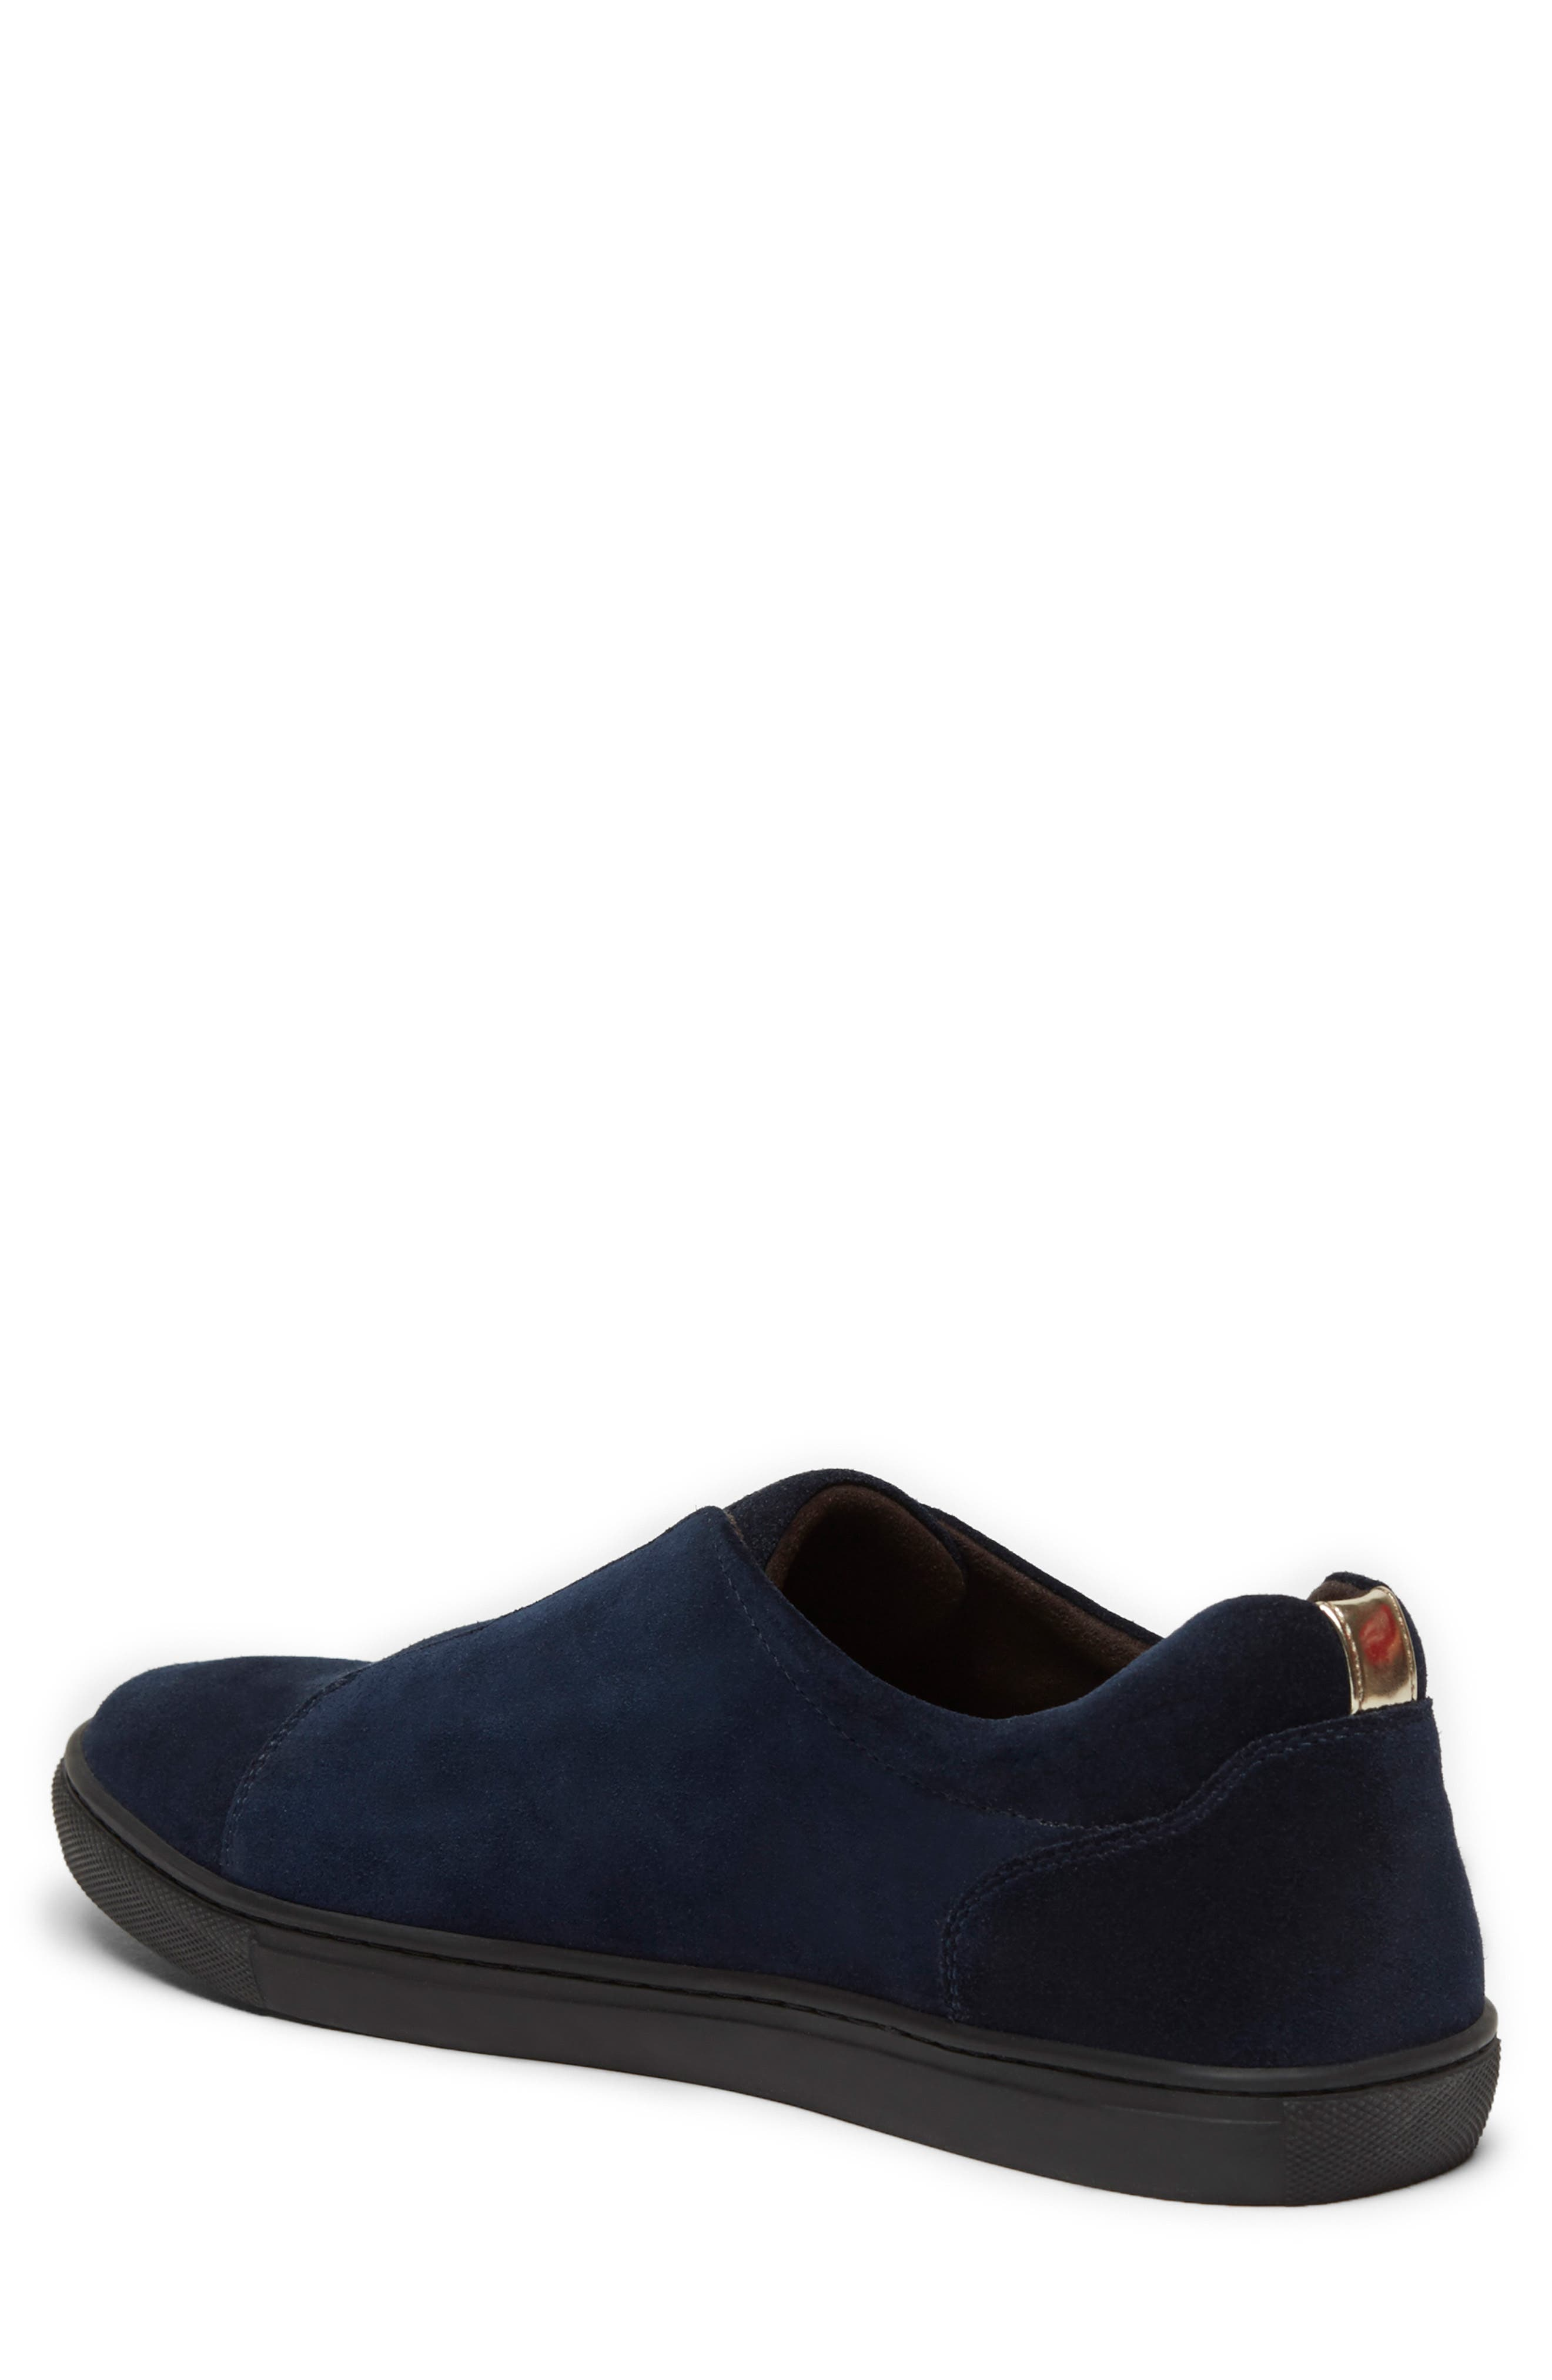 KENNETH COLE NEW YORK, Kam Slip-On, Alternate thumbnail 2, color, NAVY SUEDE